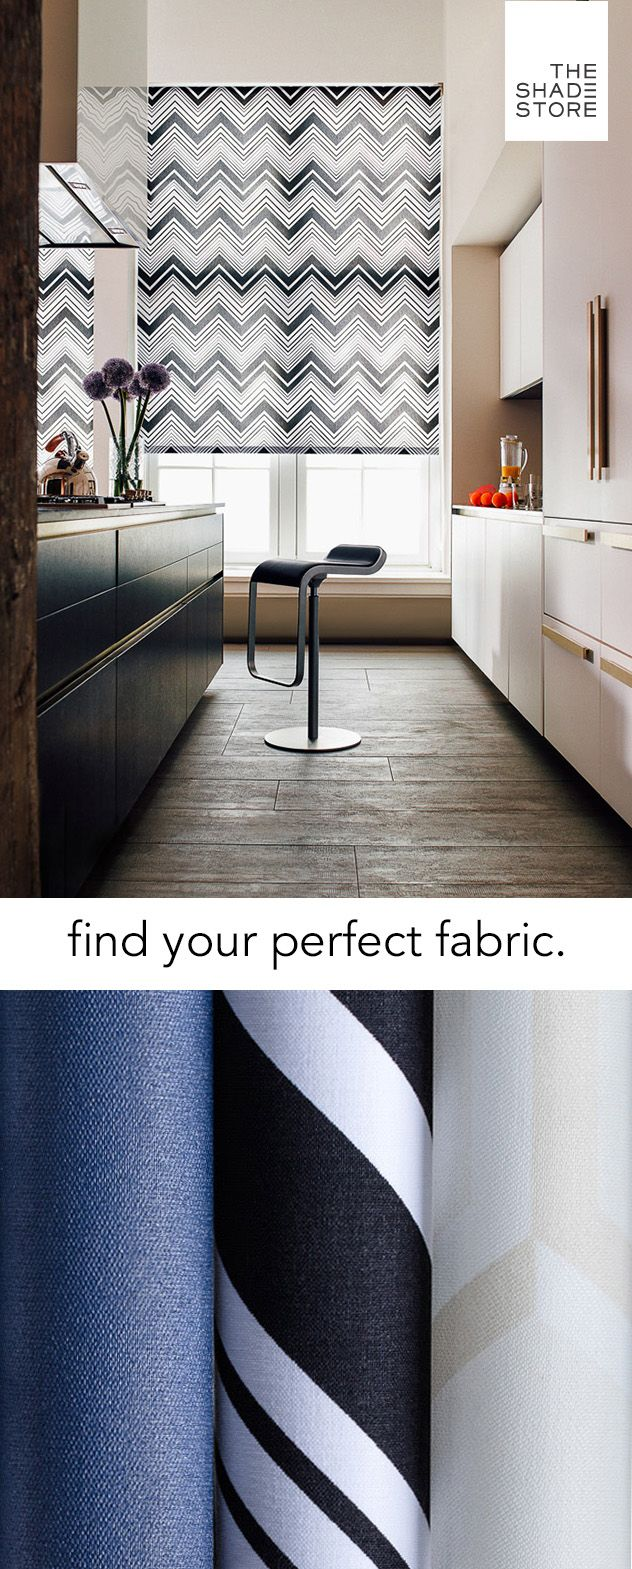 With 270+ materials, you're sure to find the perfect fabric for your windows. Order your free swatches today, and receive them in 1-3 business days.